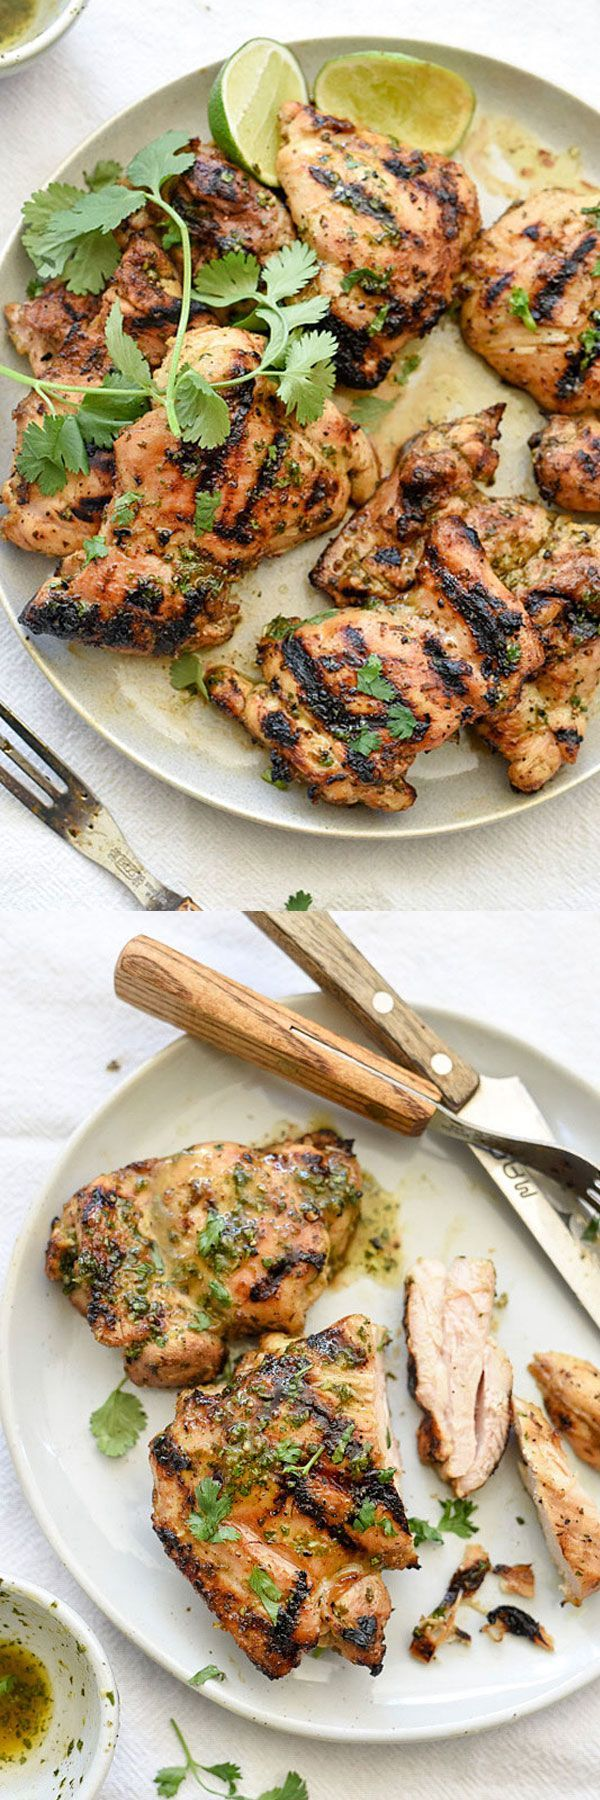 Both lime juice and zest make this a super flavorful marinade for grilled chicken thighs | foodiecrush.com